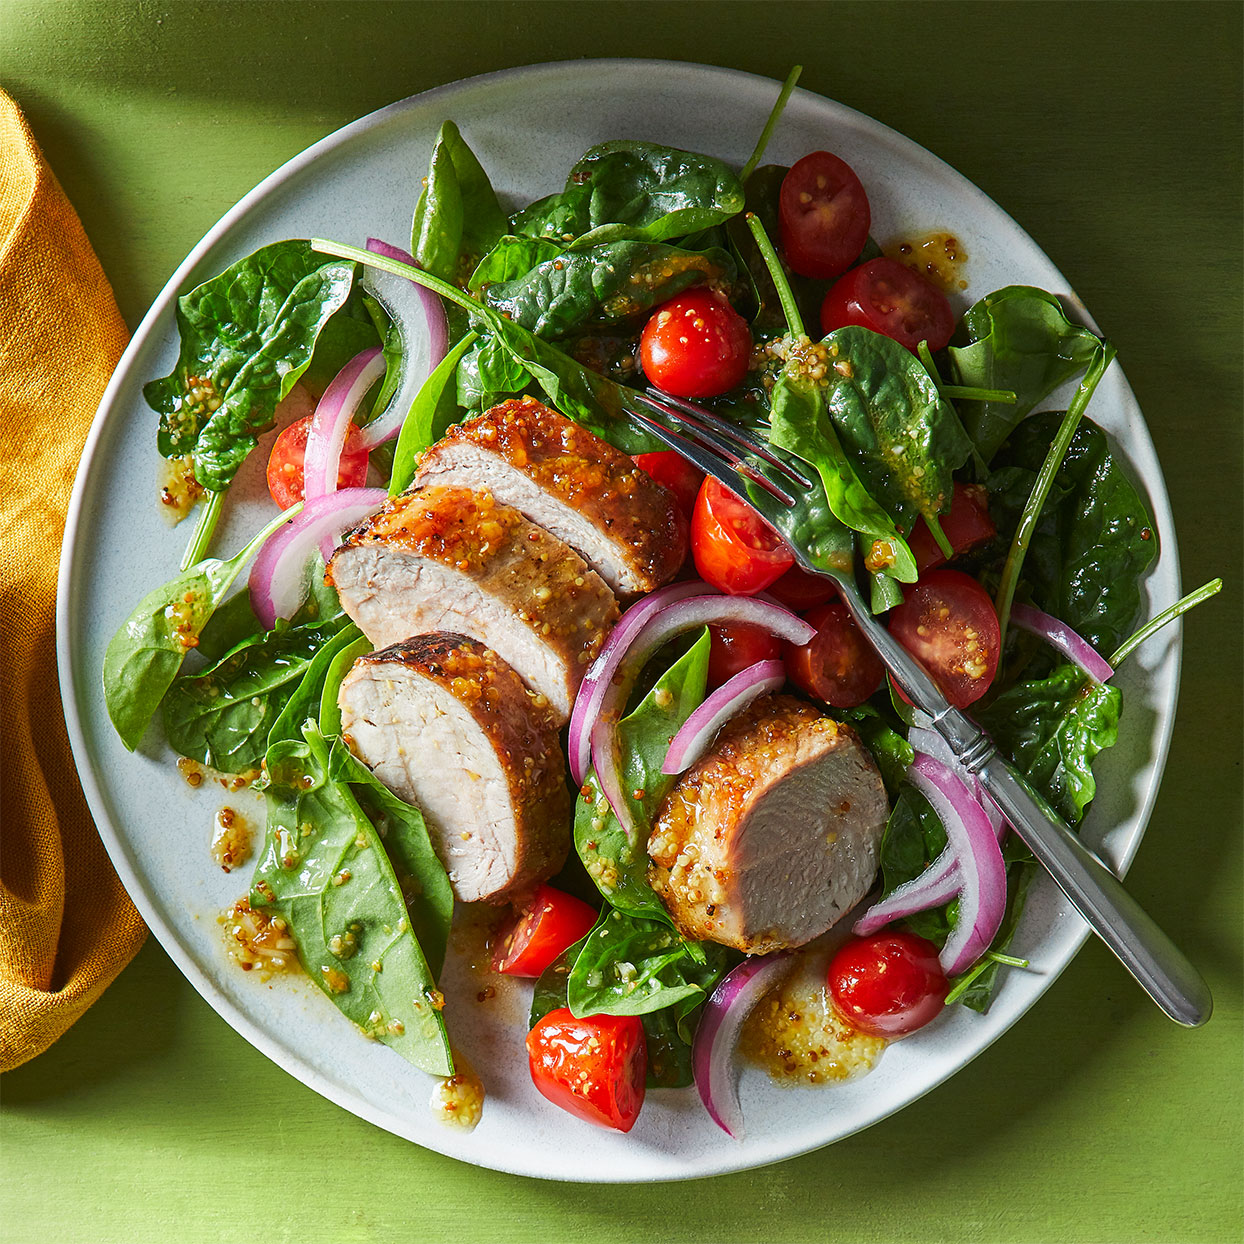 Apricot-Mustard Pork Tenderloin with Spinach Salad Trusted Brands